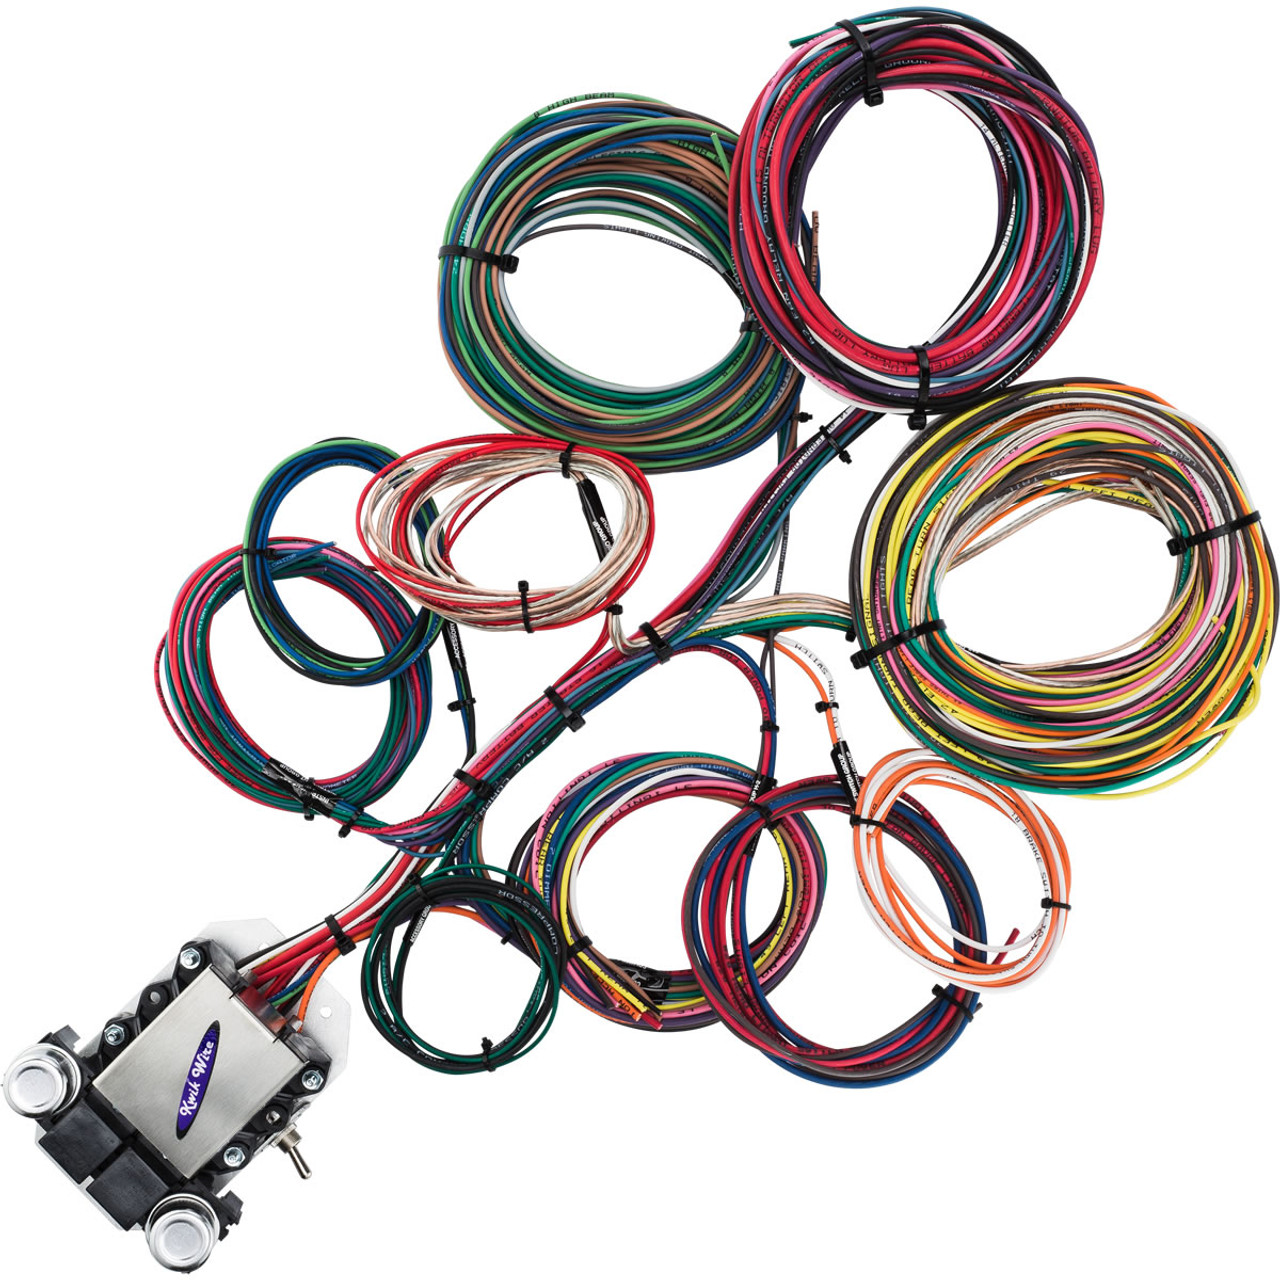 14 Circuit Ford Wire Harness - KwikWire.com | Electrify Your Ride on f550 wiring harness, f1 wiring harness, gt wiring harness, f150 wiring harness, f650 wiring harness, ranger wiring harness, f15 wiring harness, mustang wiring harness, f350 wiring harness,